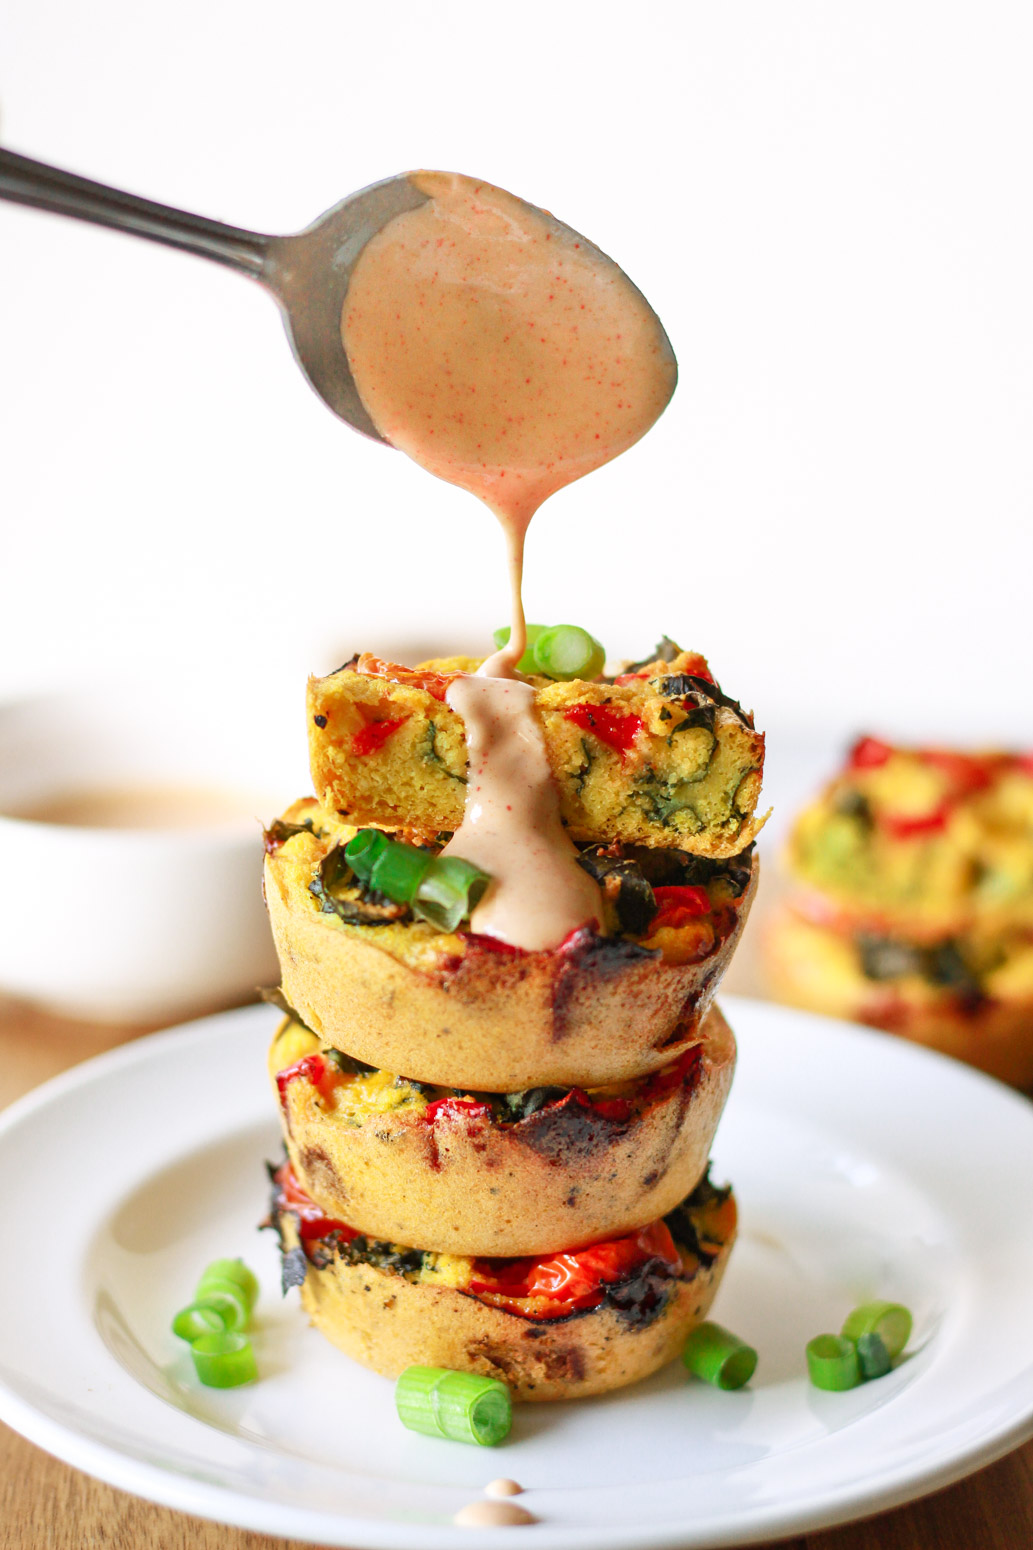 How to make vegan egg muffins without chickpeas or tofu! This mung bean based egg alternative is gluten-free and can be customized to your liking with tomatoes, kale, and other veggies. These vegan egg muffins are ready in 20 minutes and can be served with a tahini dip.